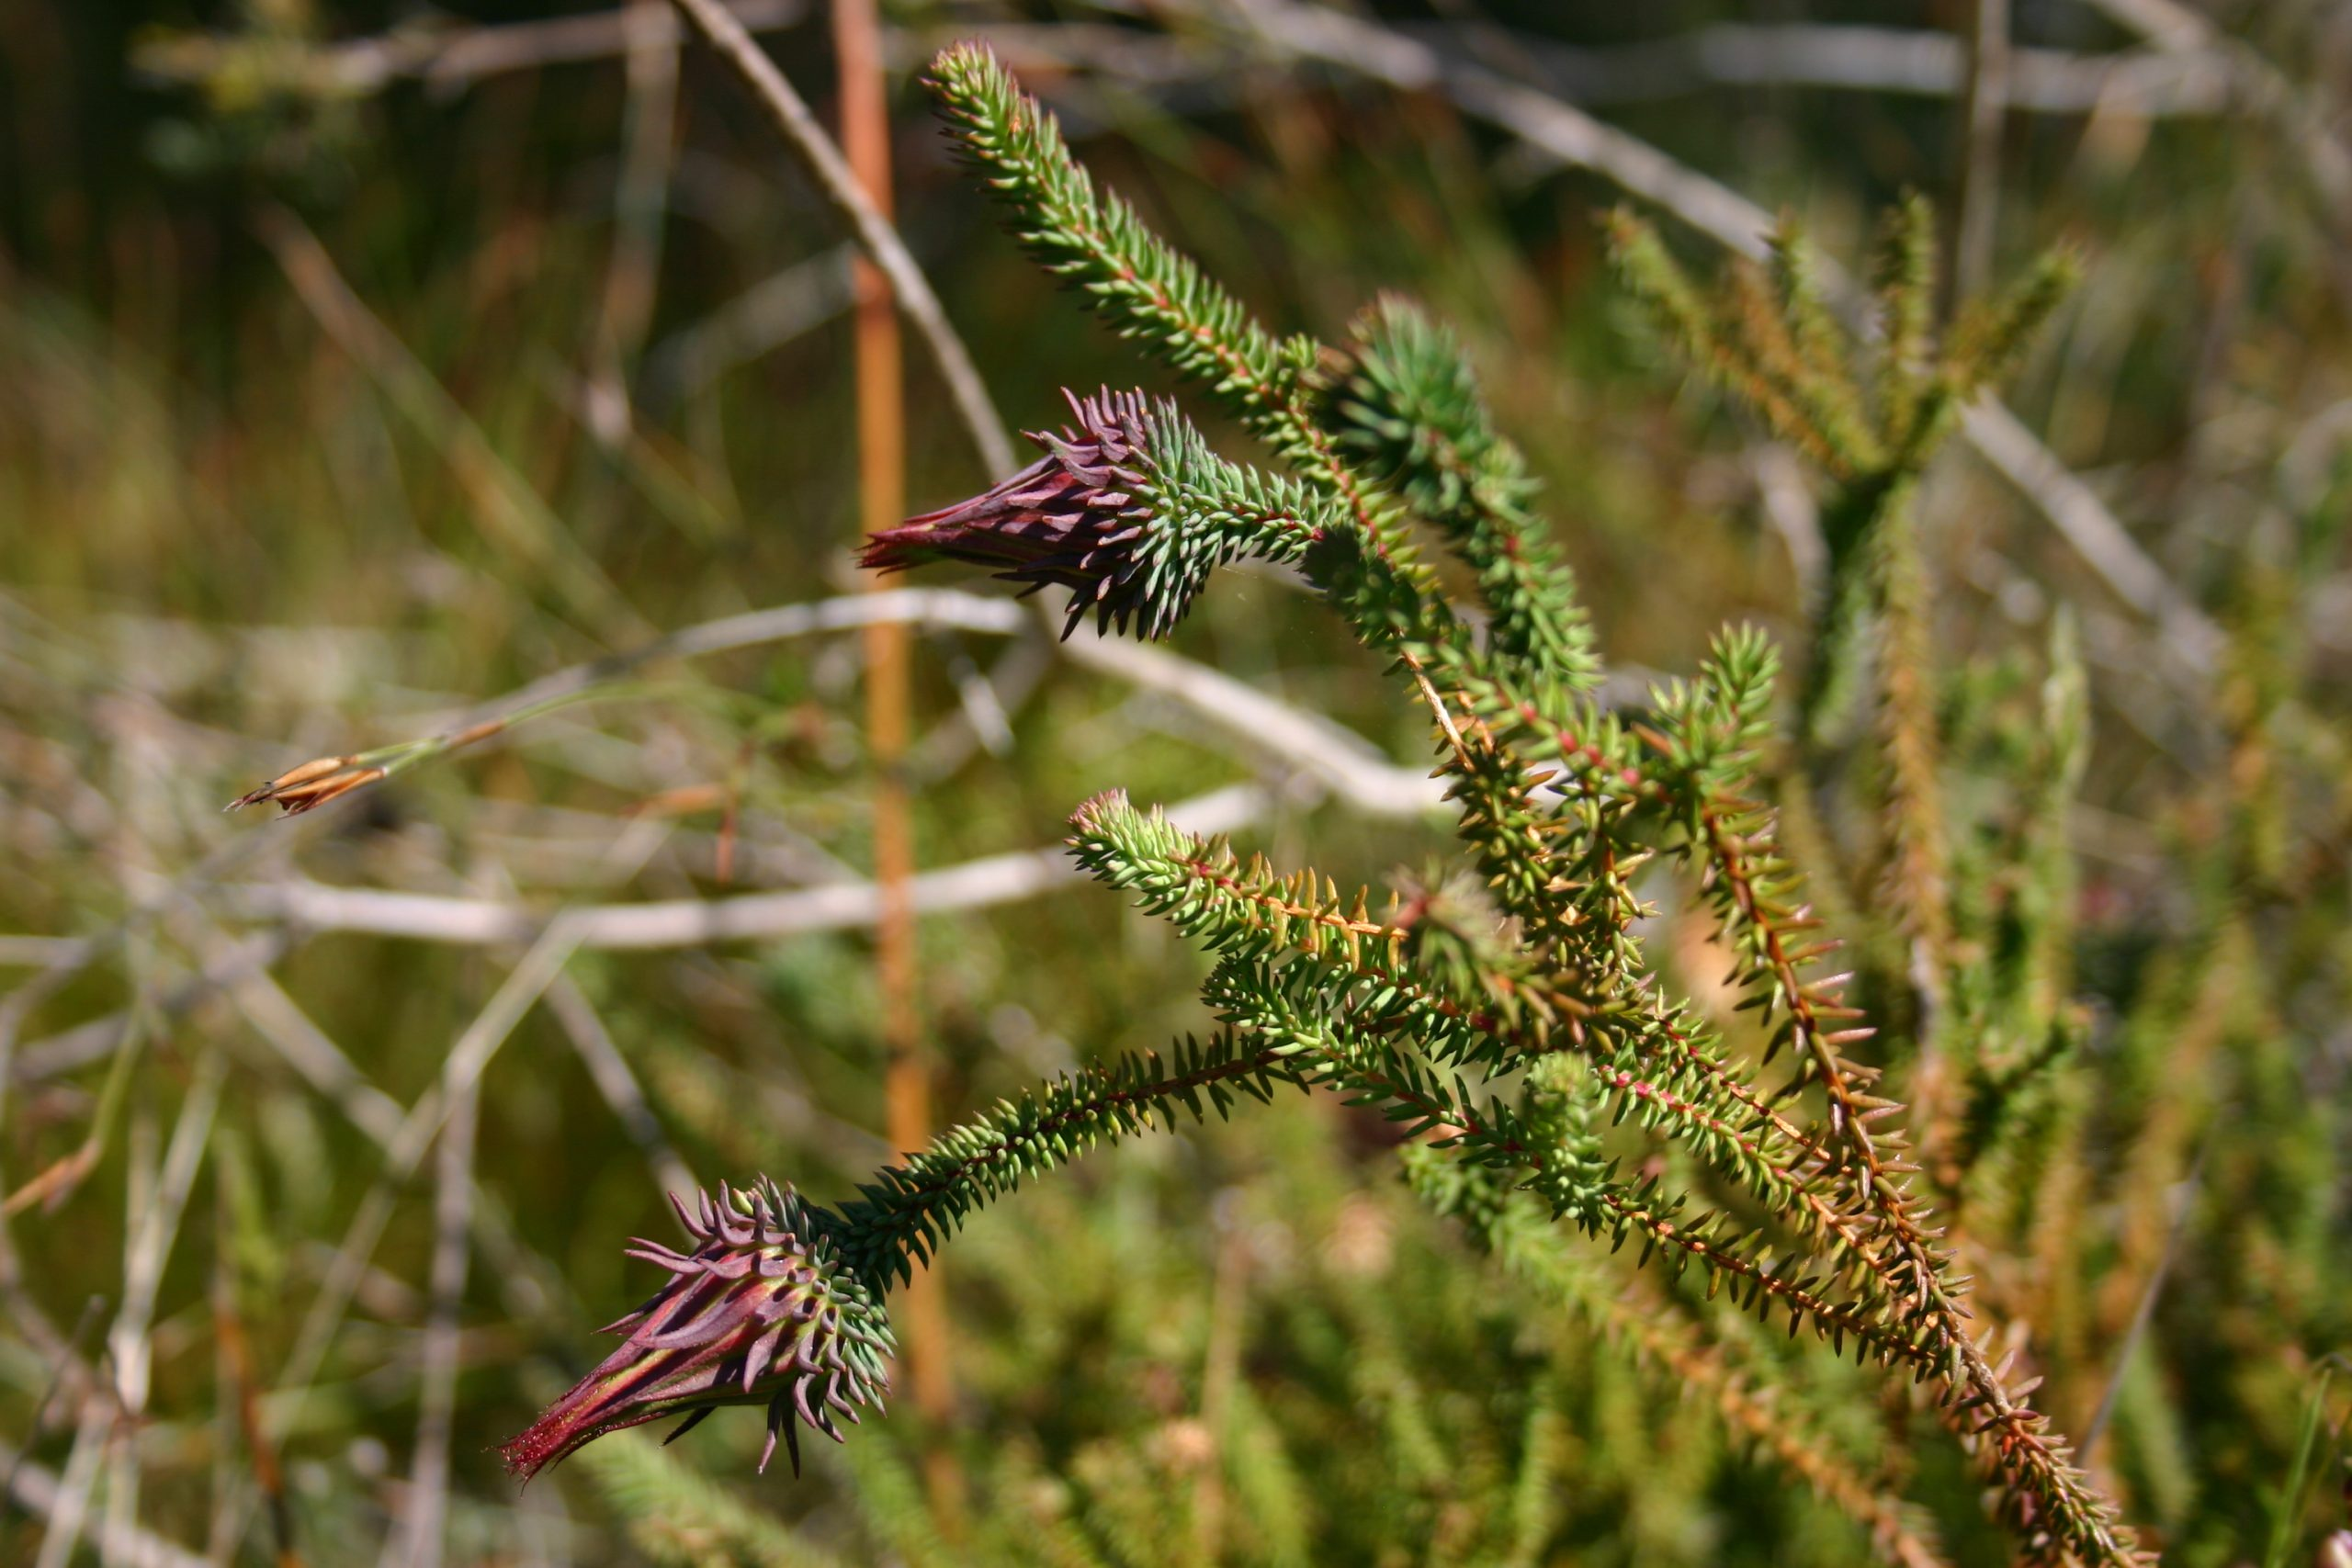 A threatened plant